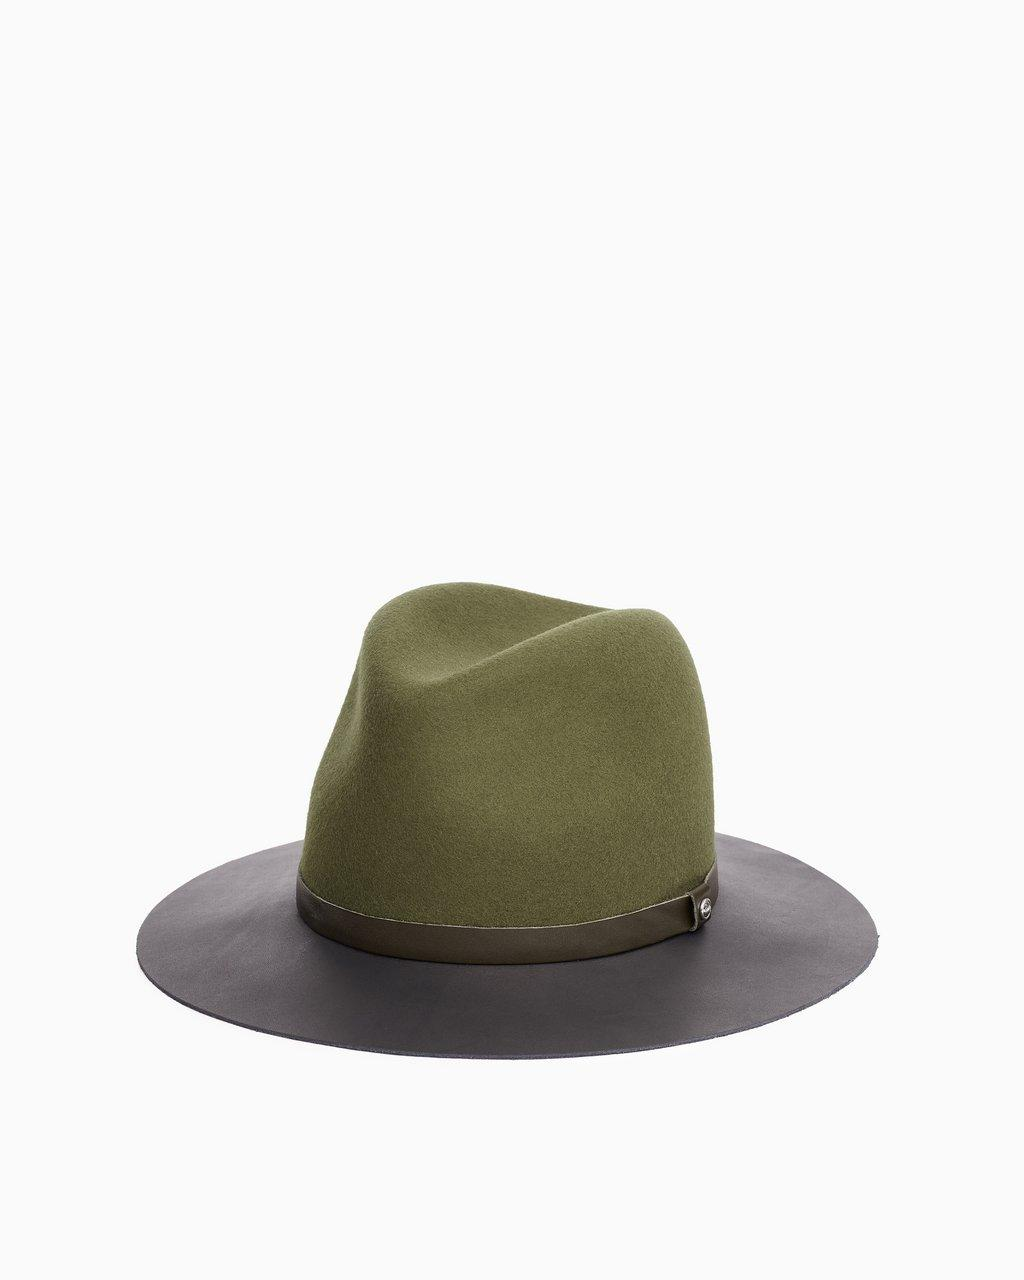 Floppy Leather Brim Fedora